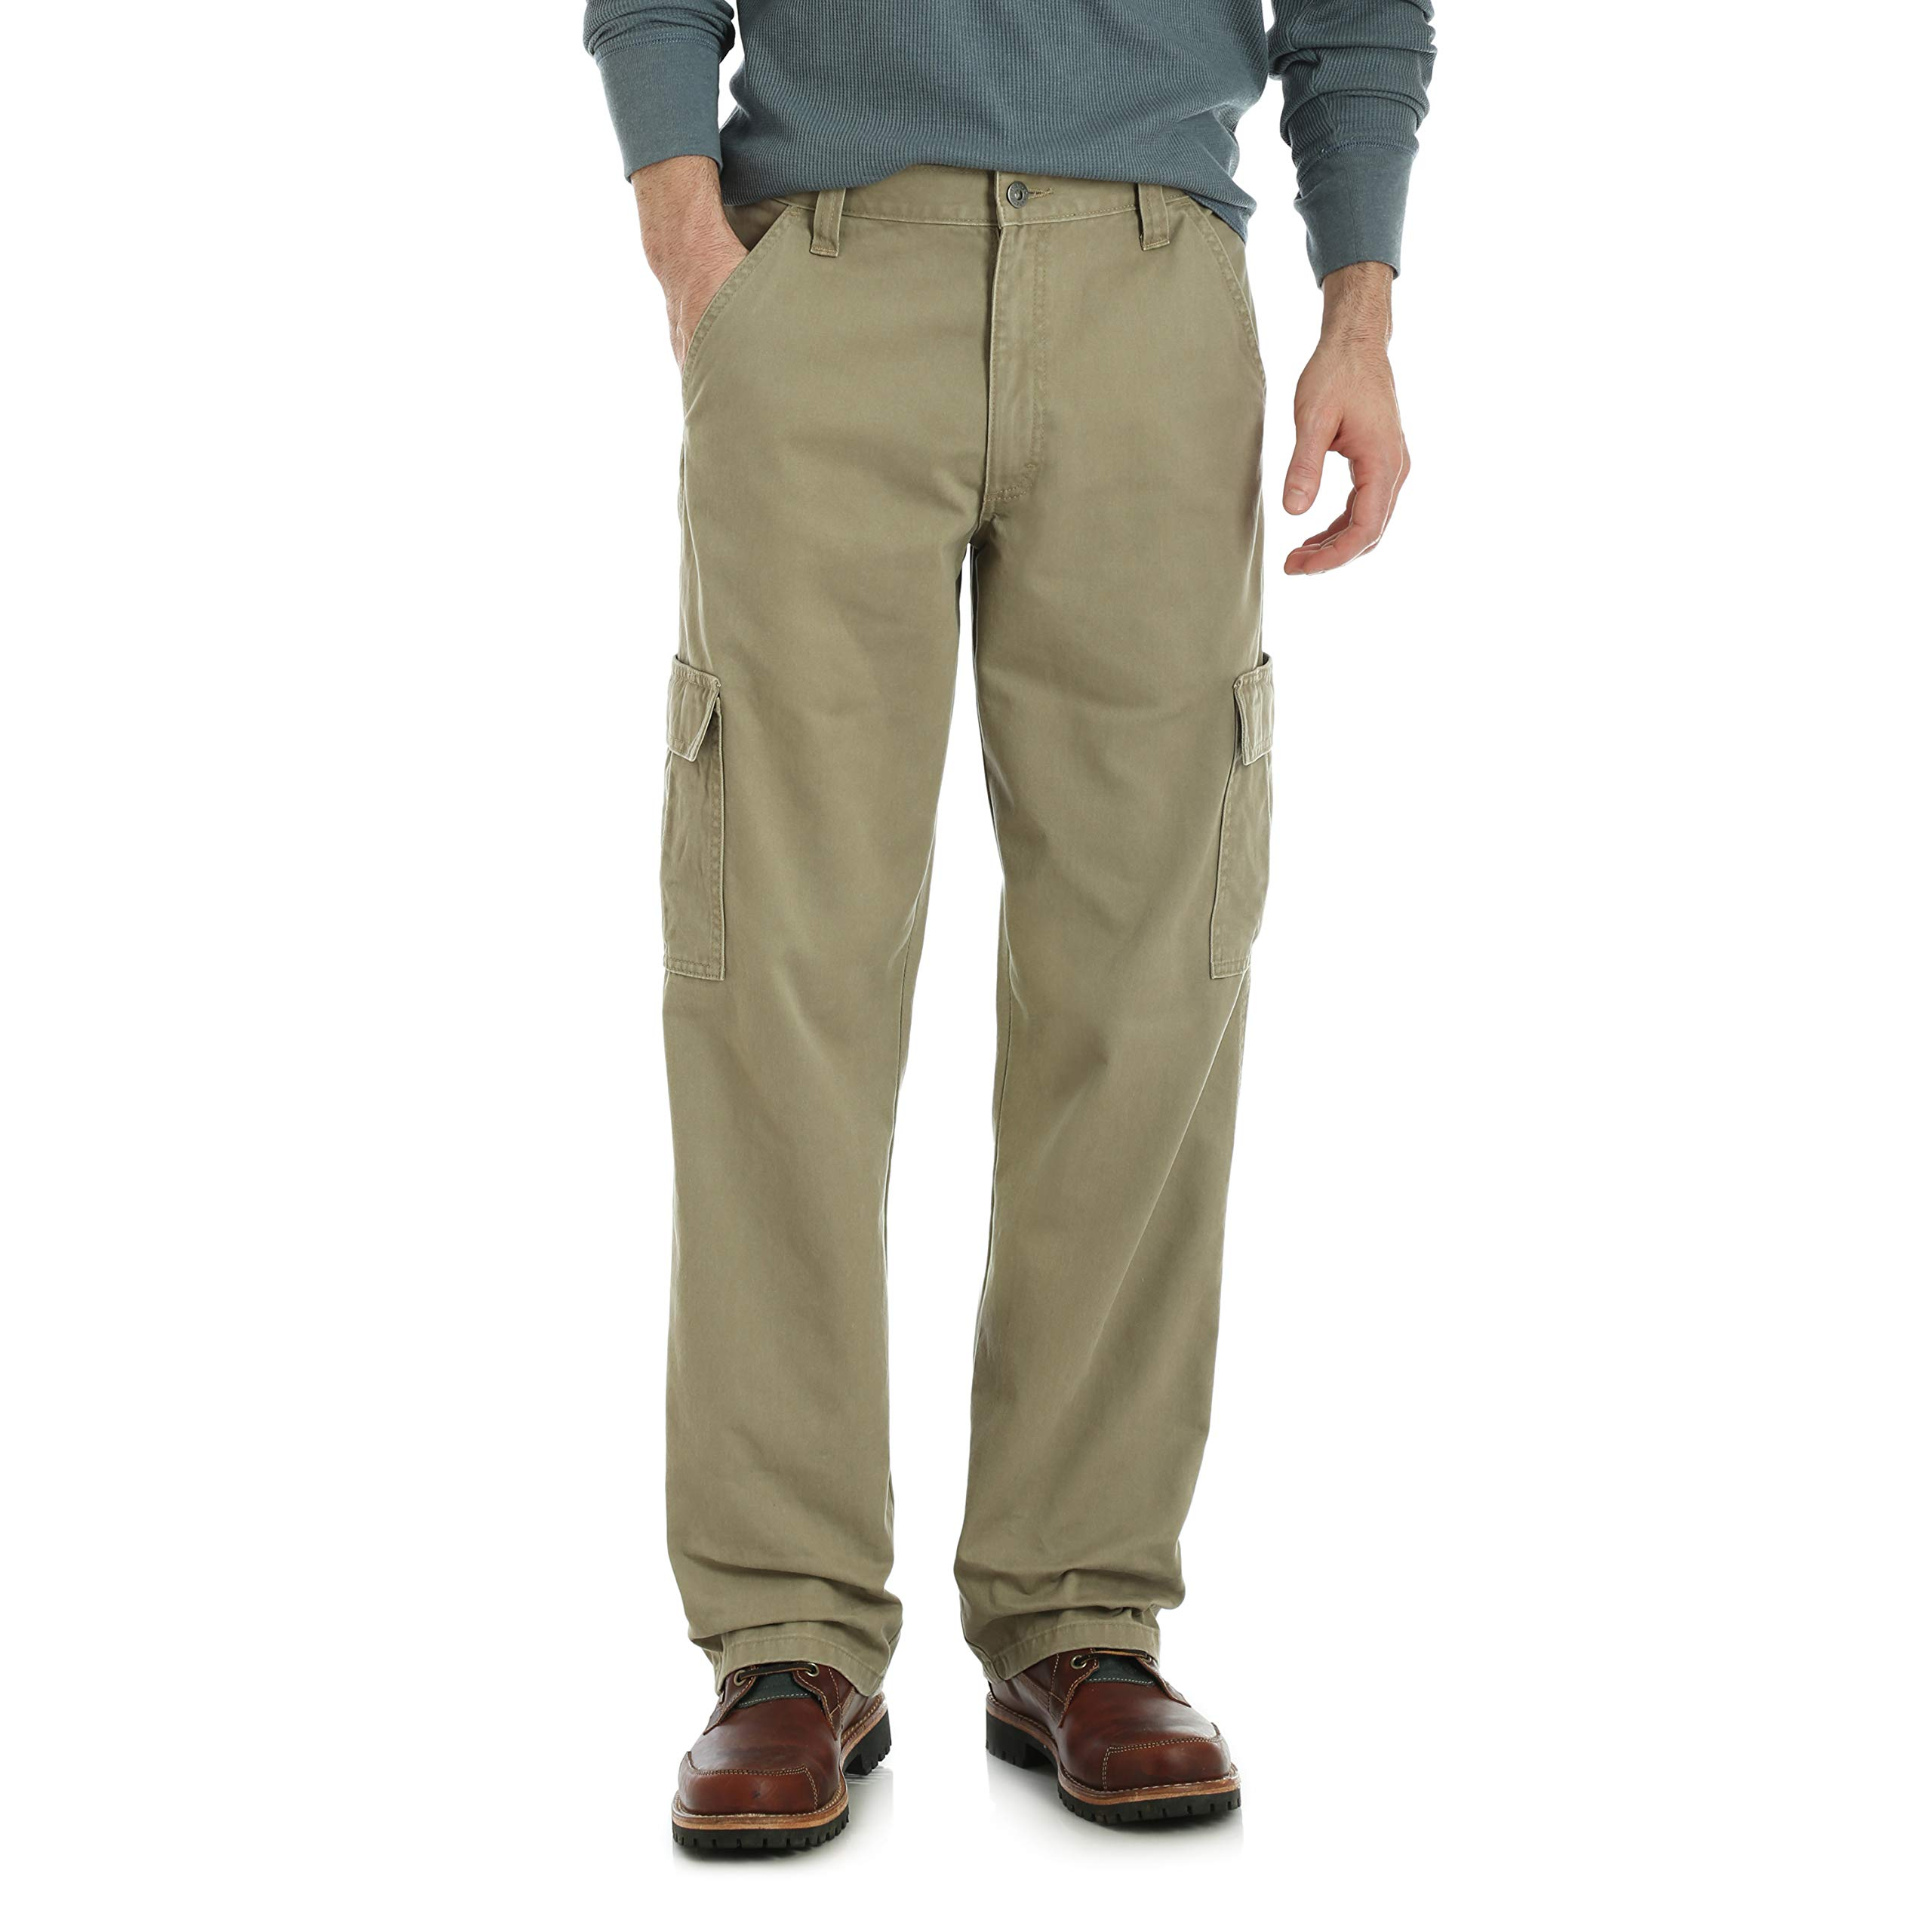 Wrangler Men's Authentics Classic Cargo Pant, British Khaki Twill, 36W x 32L